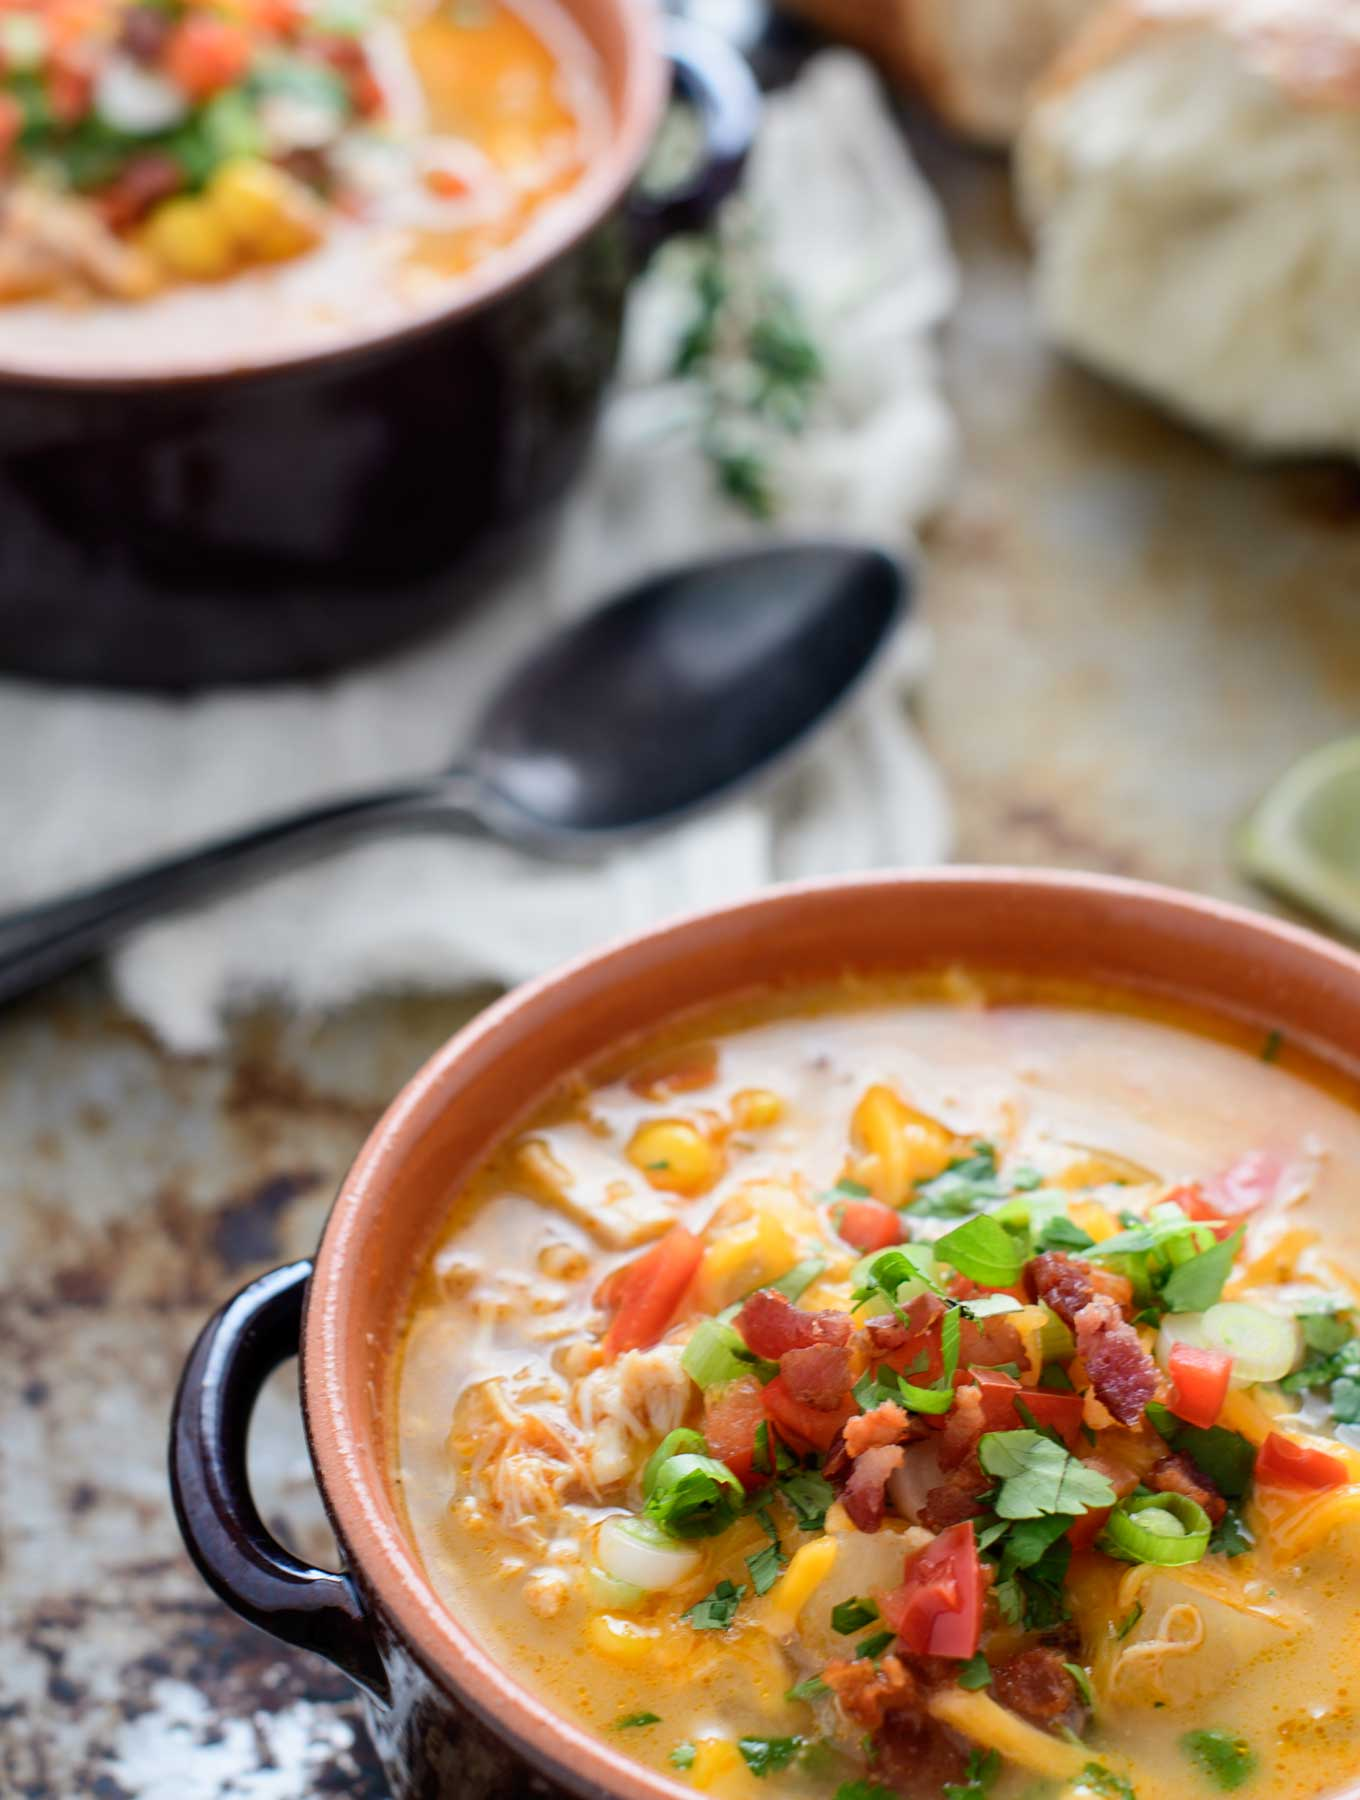 Two bowls of Southwest Corn Chowder